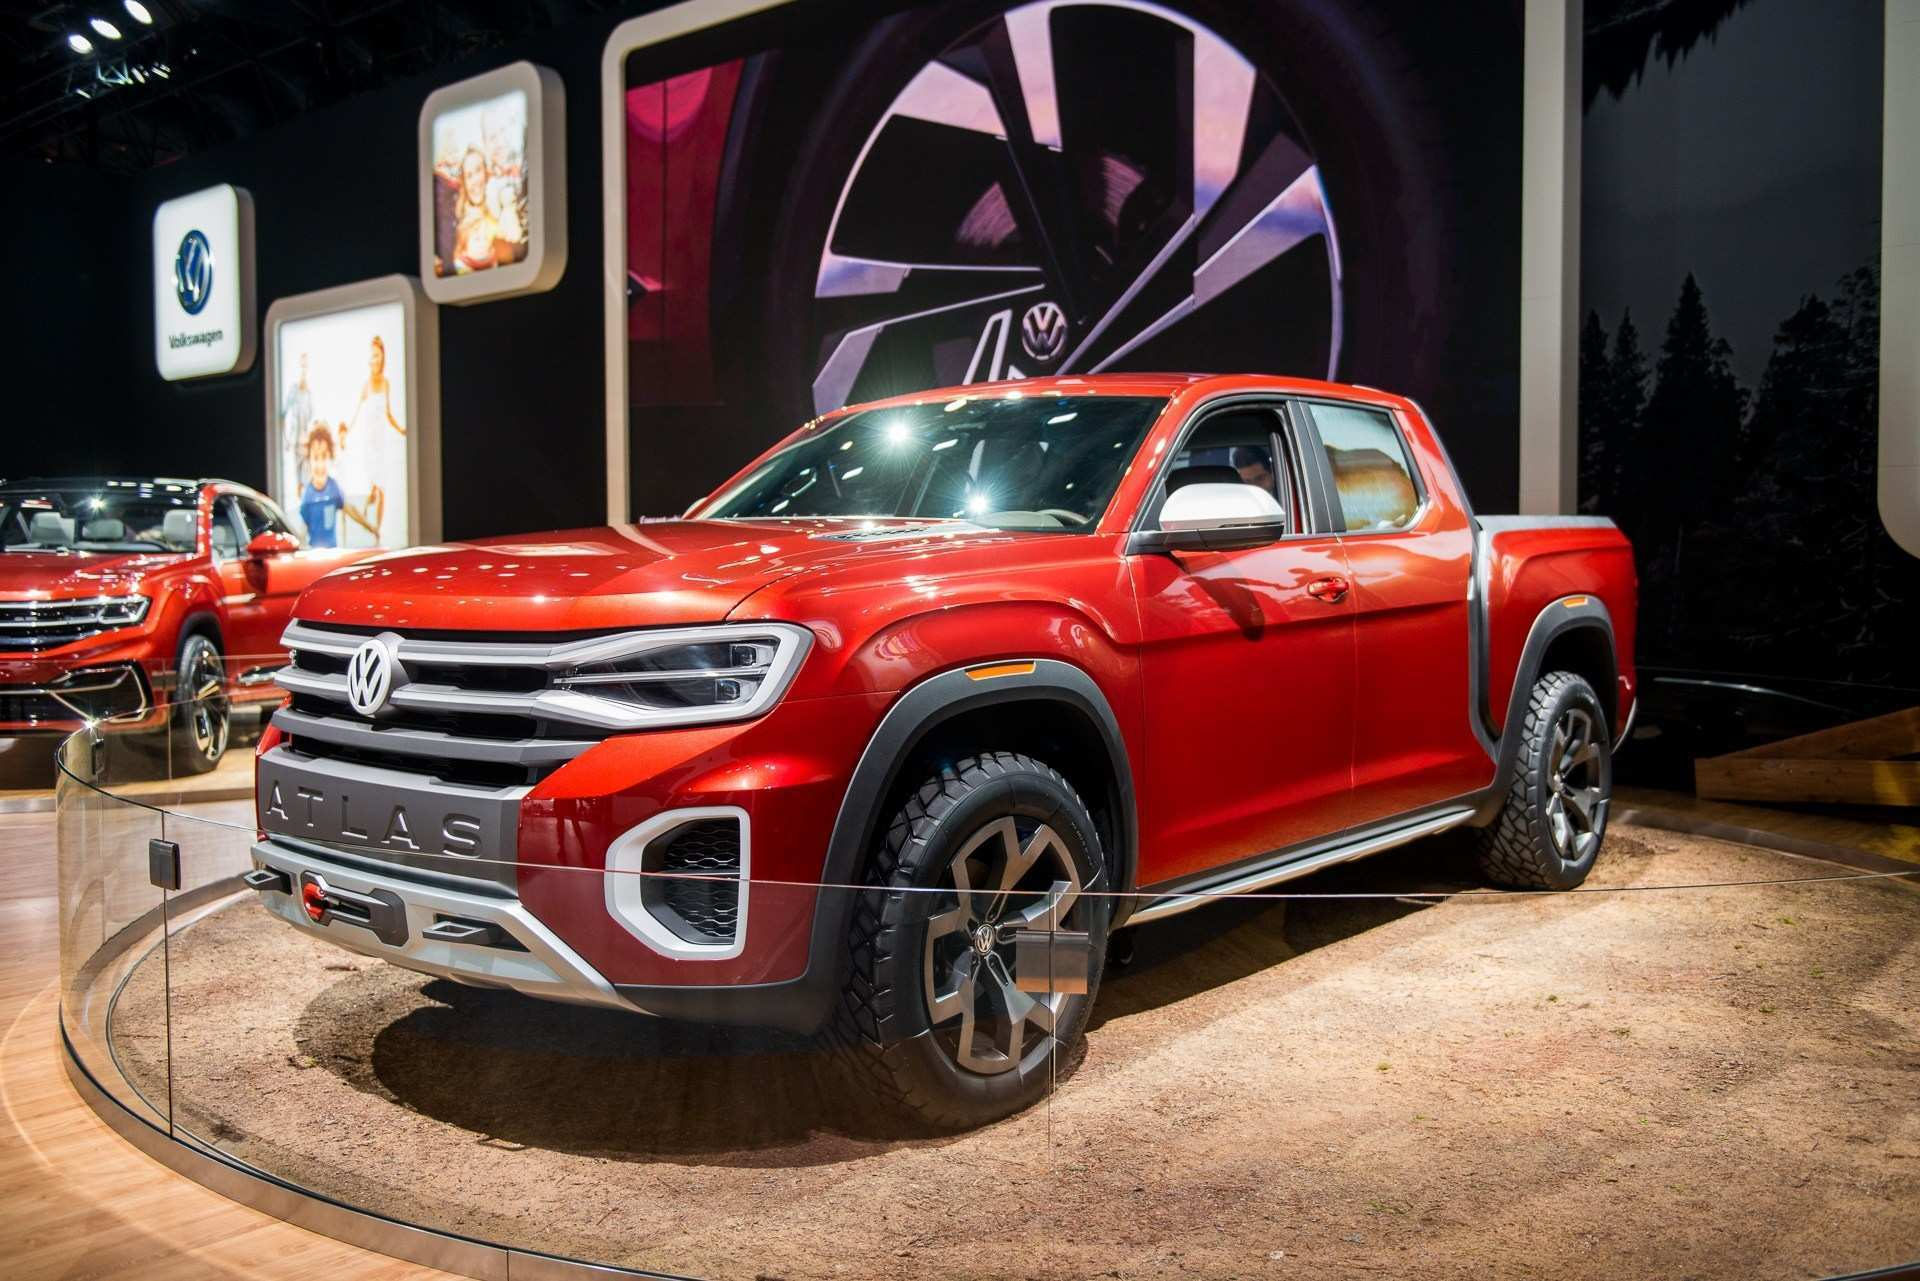 39 Gallery of 2020 Vw Amarok Picture with 2020 Vw Amarok